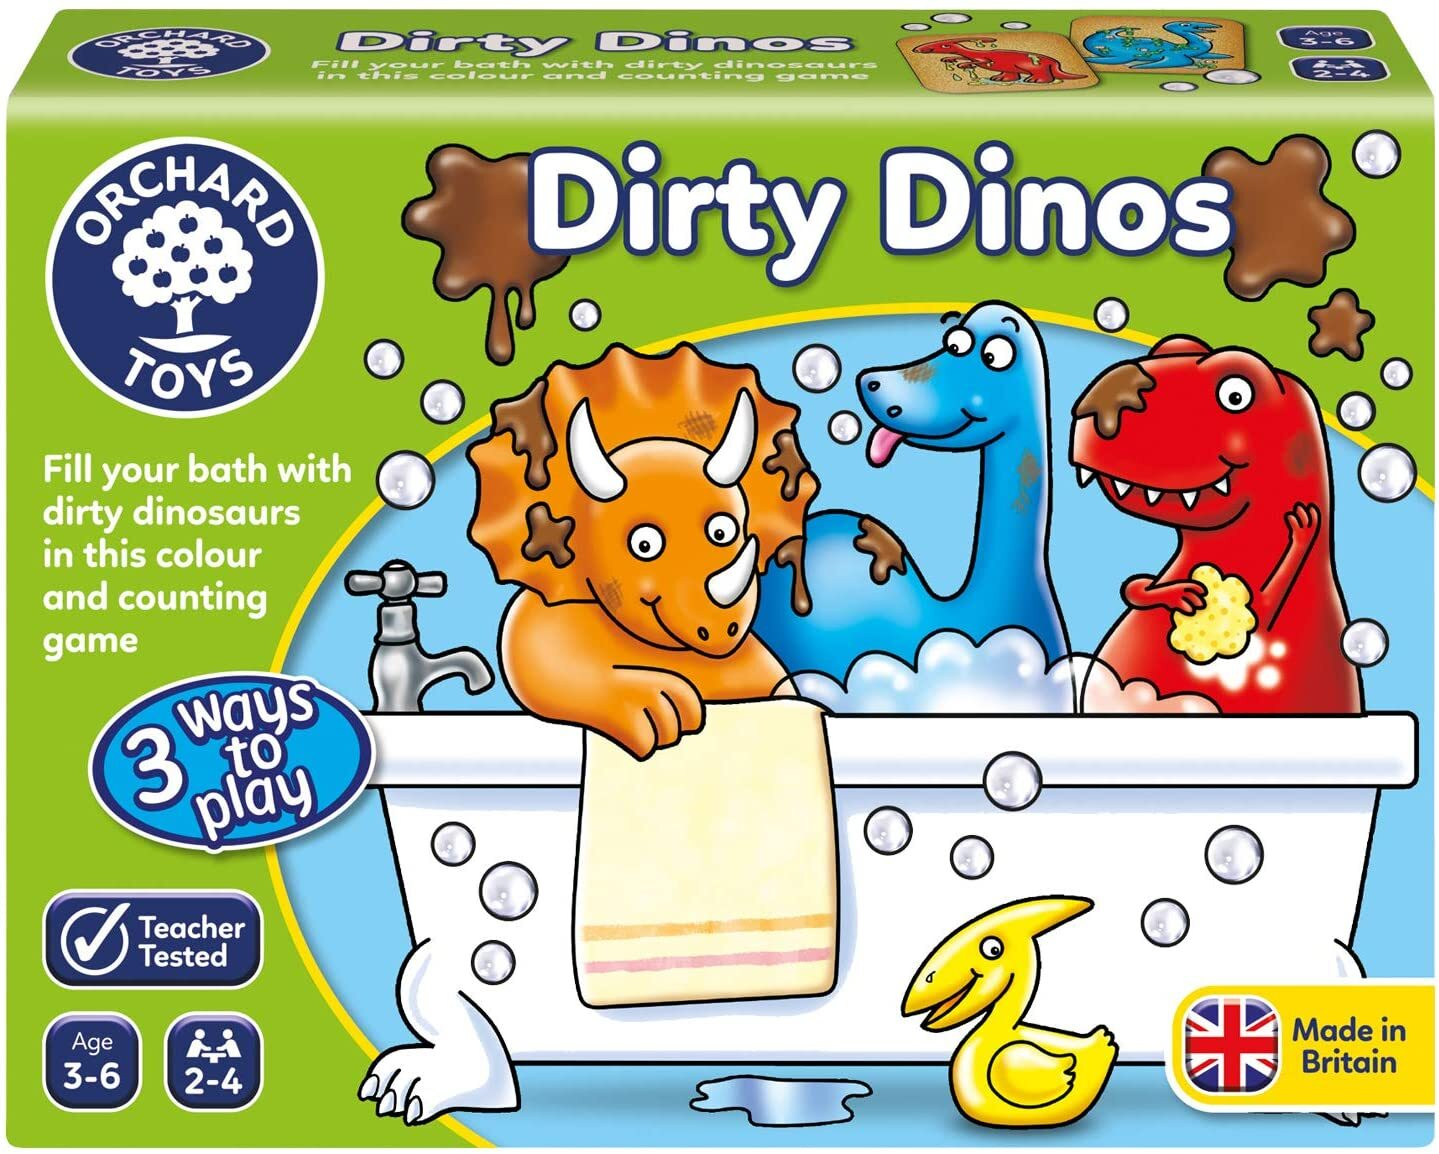 ORCHARD GAME - DIRTY DINOS GAME